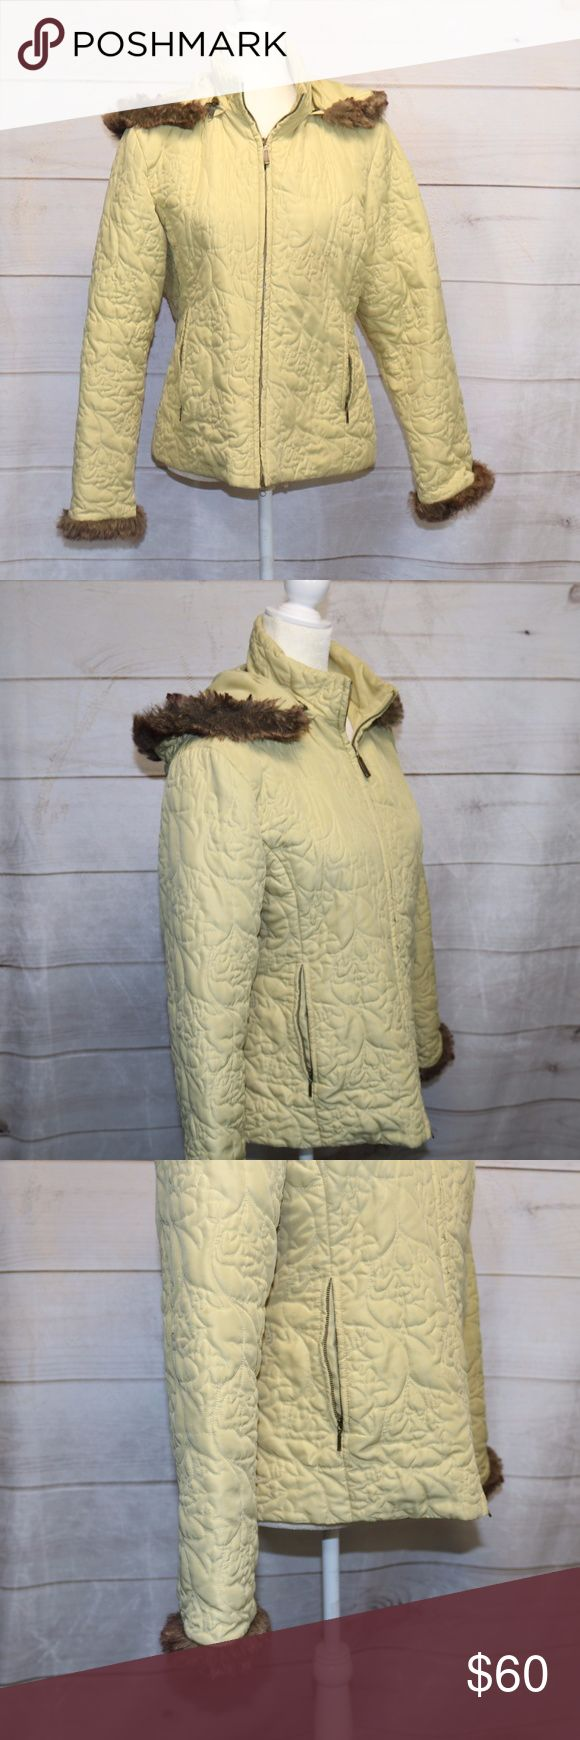 CAbi lemon yellow quilted jacket size Large EUC CAbi light yellow jacket faux fur detail on the sleeves and hood Style: 362 100% Polyester CAbi Jackets & Coats